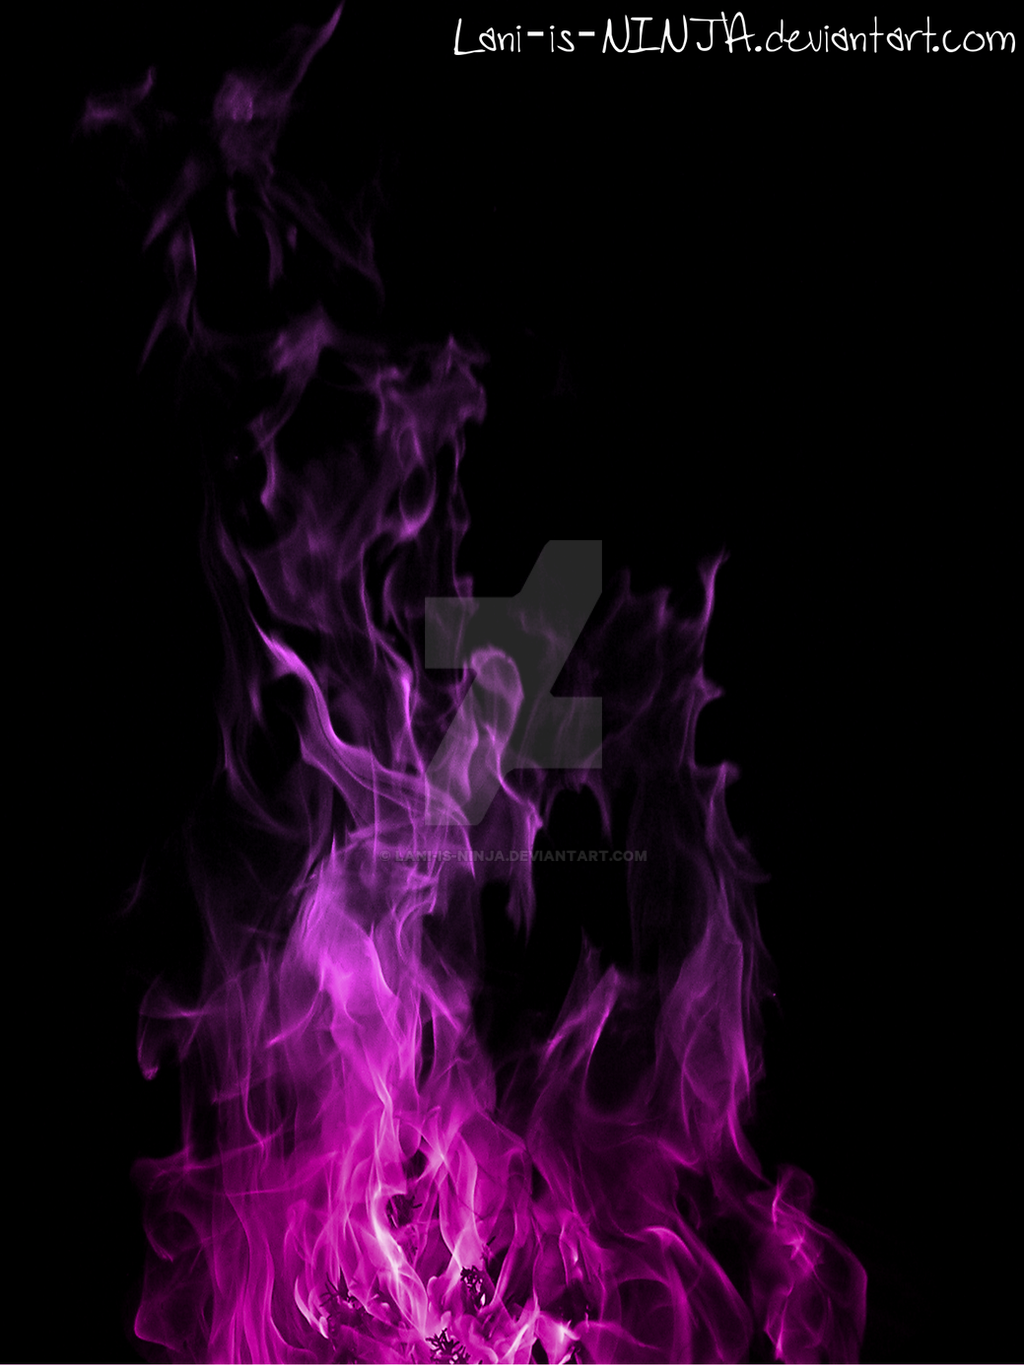 Purple Flames With Black Background By Lani-is-NINJA On